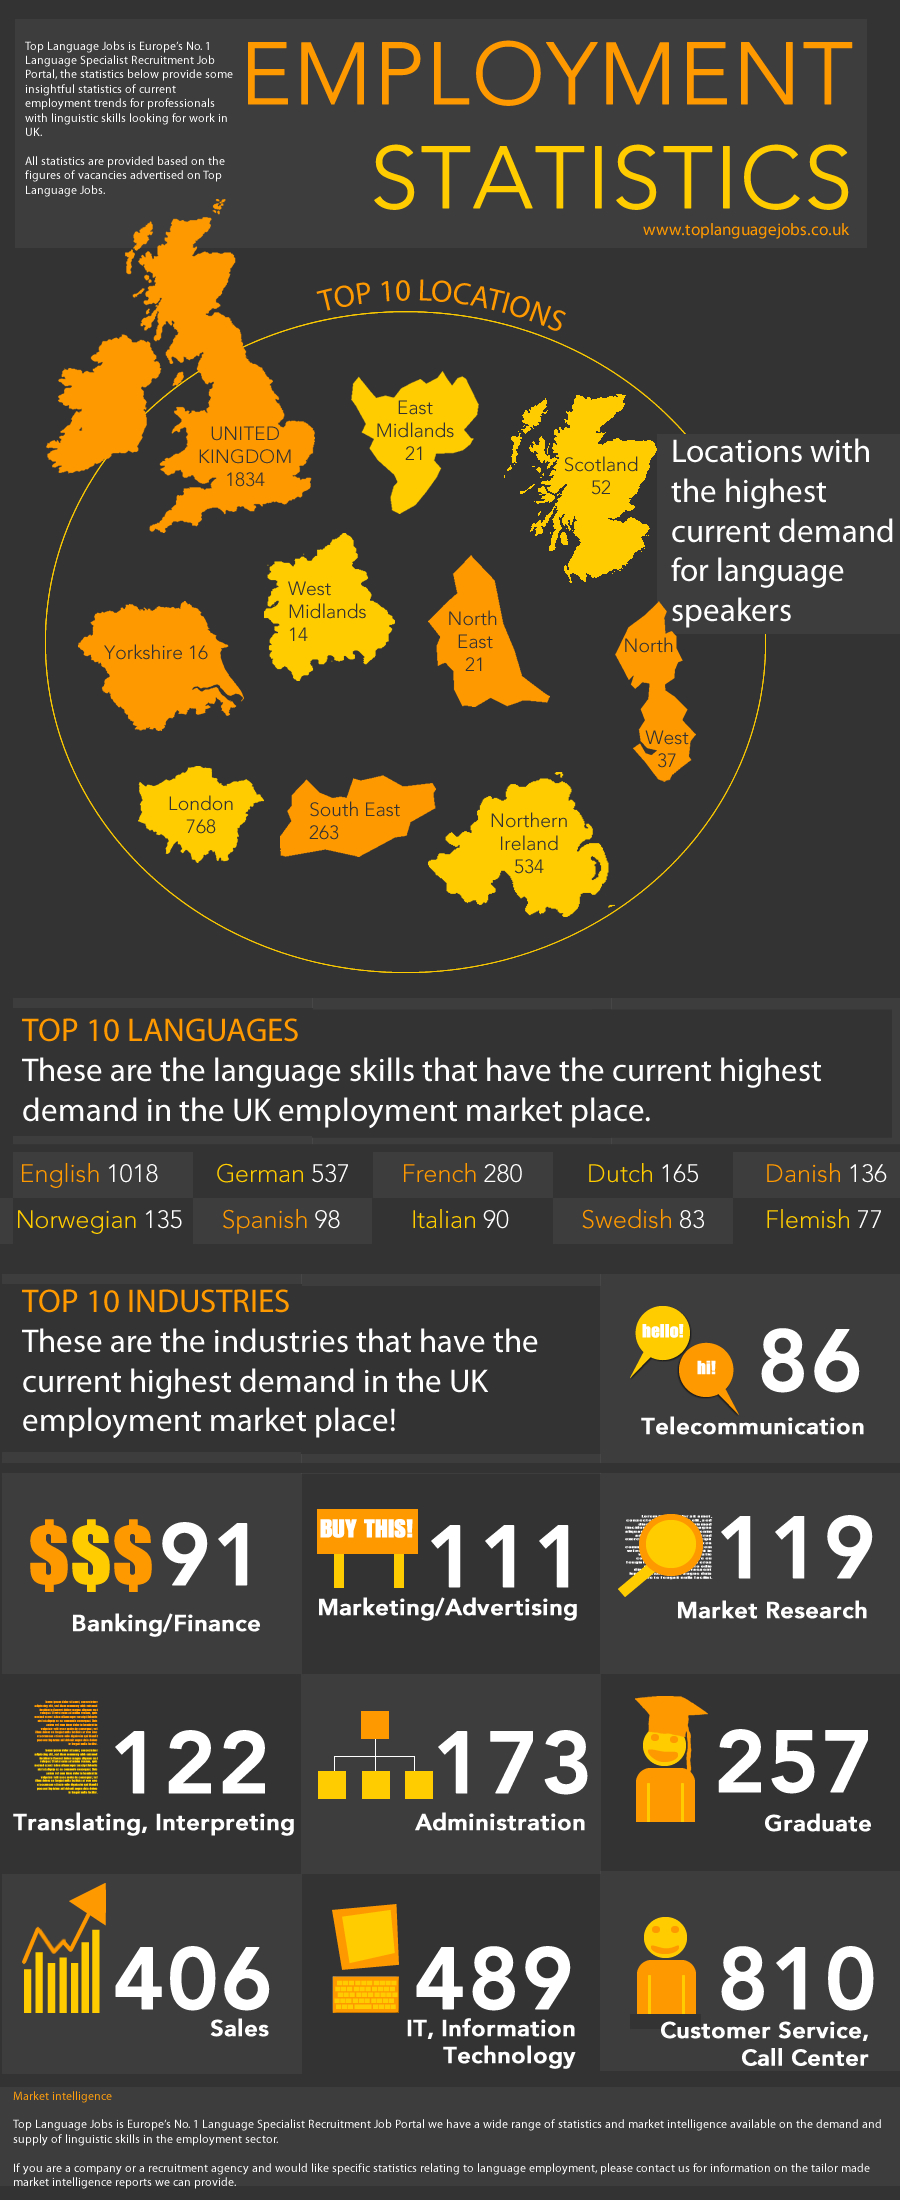 Employment Statistics For Top Language Jobs